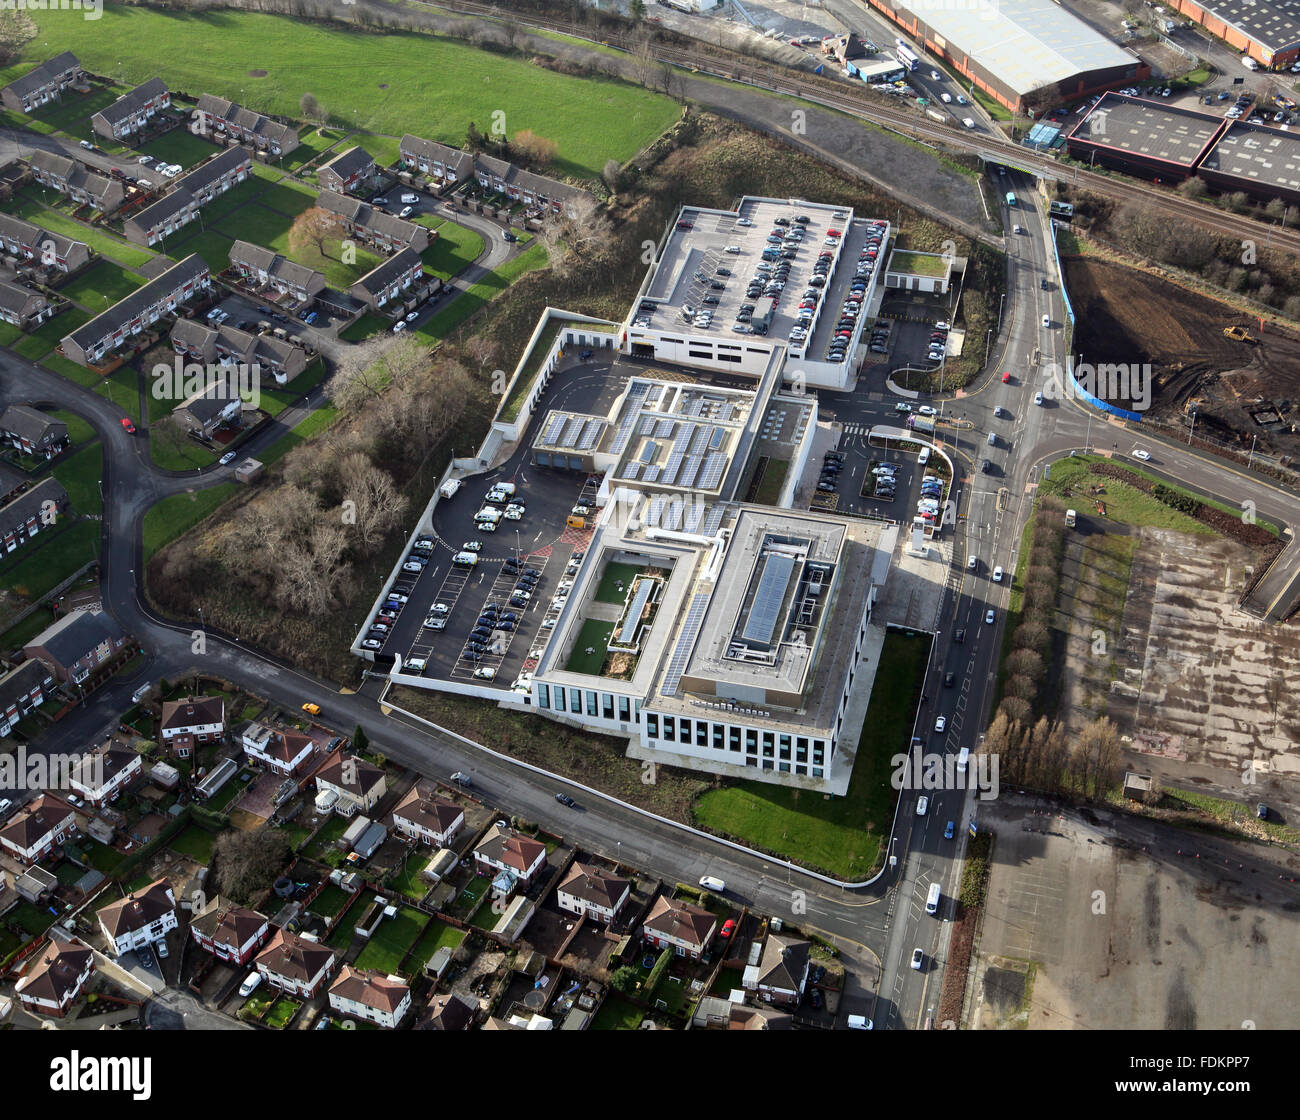 aerial view of Leeds District Police HQ Headquarters, Millshaw, Leeds, UK - Stock Image